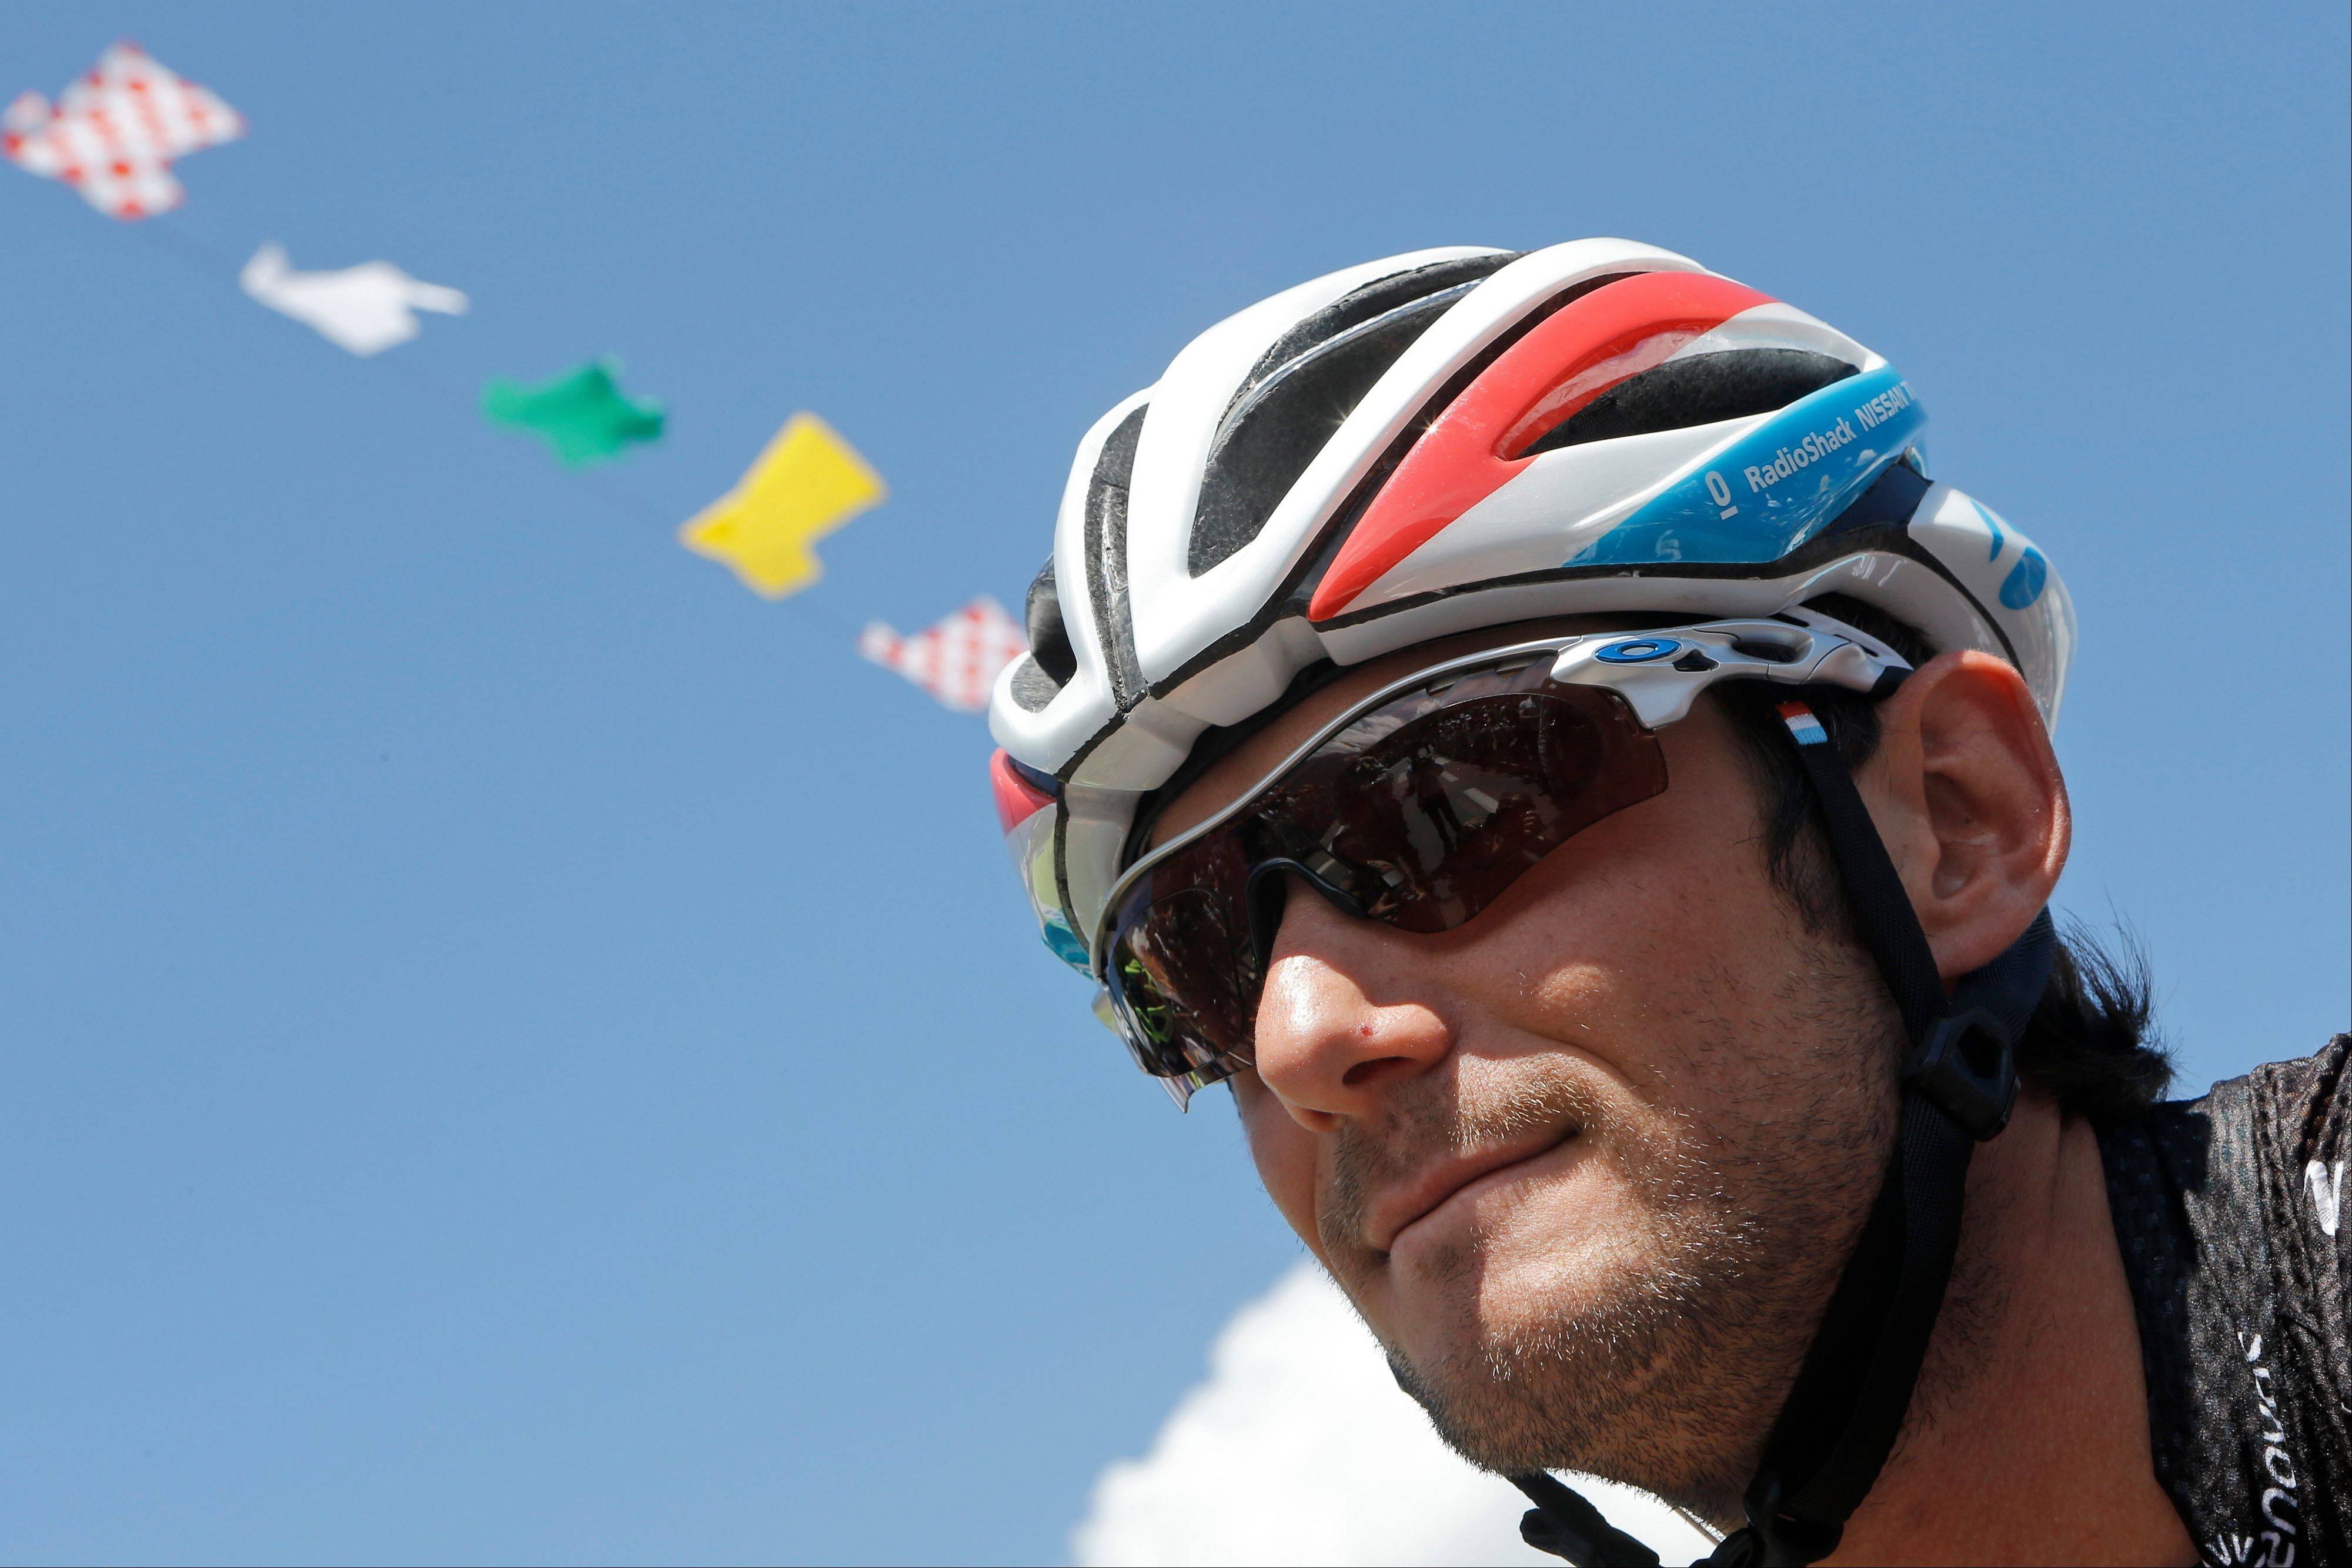 Cycling�s governing body UCI says Frank Schleck has tested positive for a banned diuretic during the Tour de France.